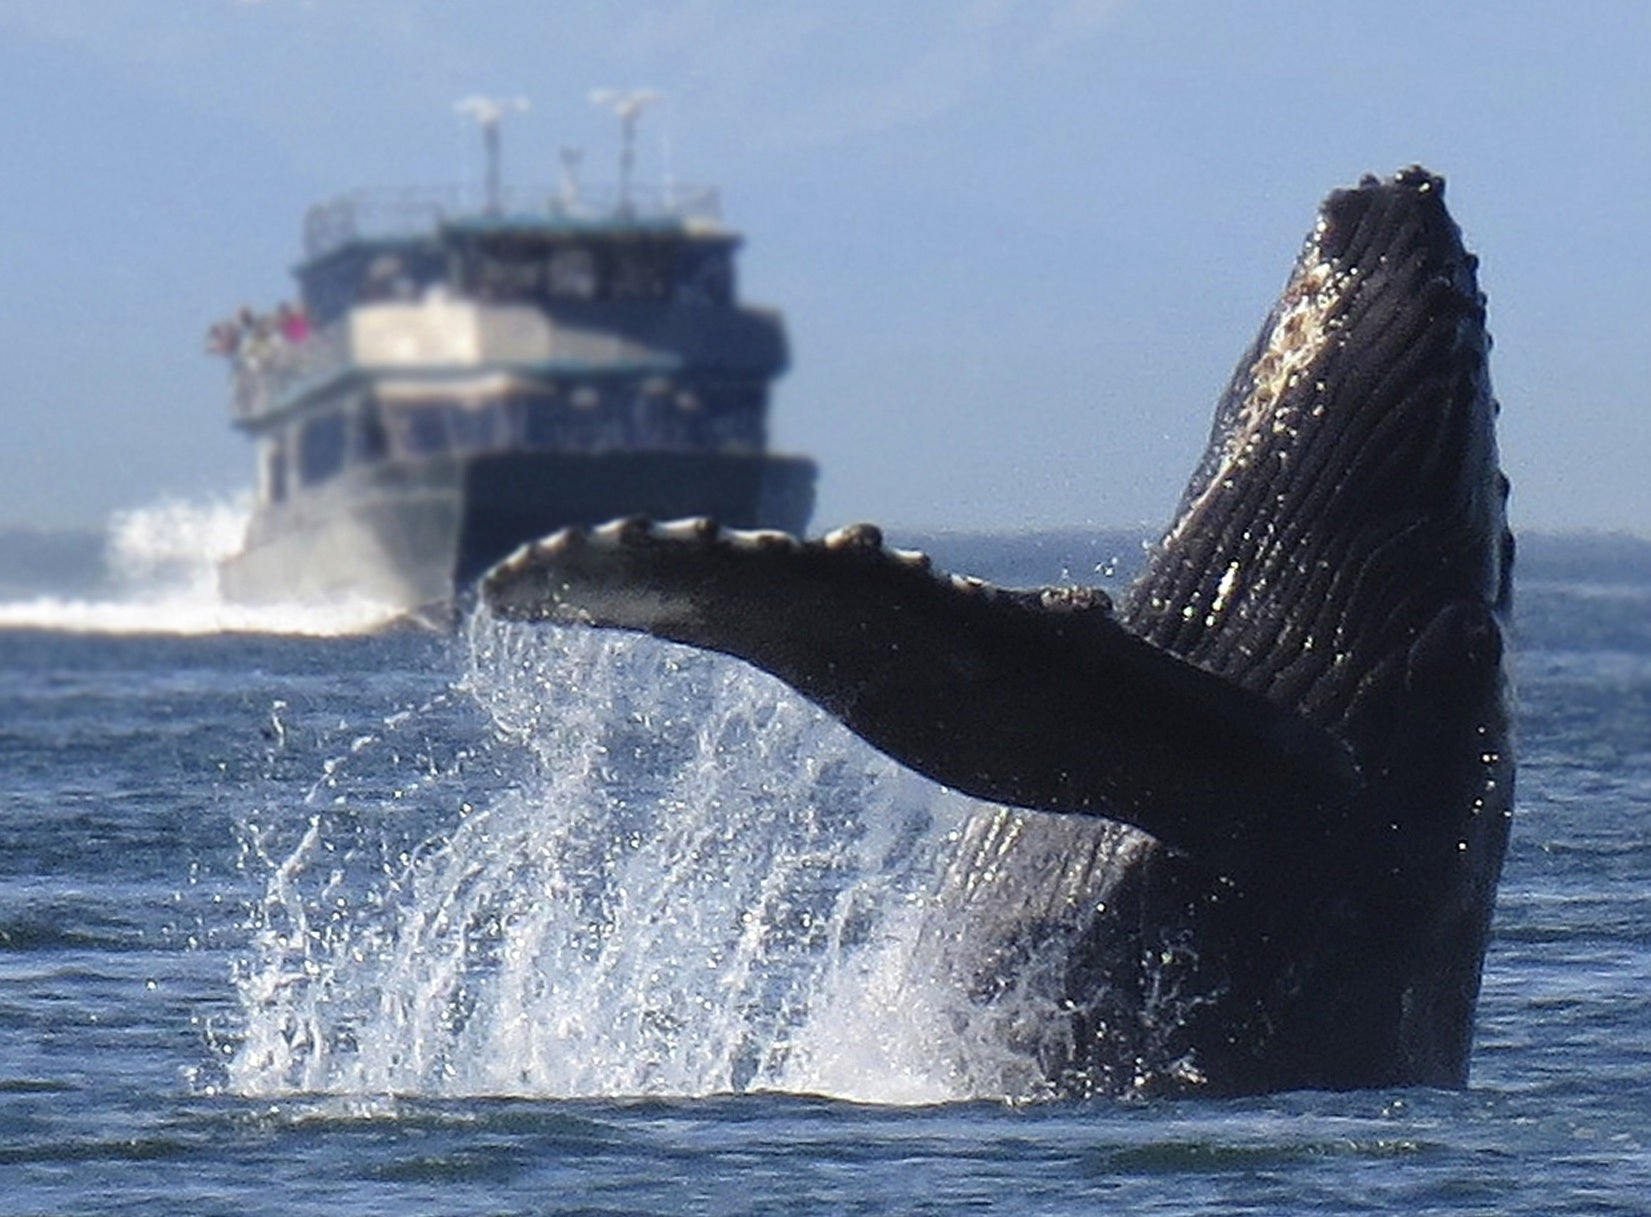 Humpback Whale Image by Alan Bedding from Pixabay